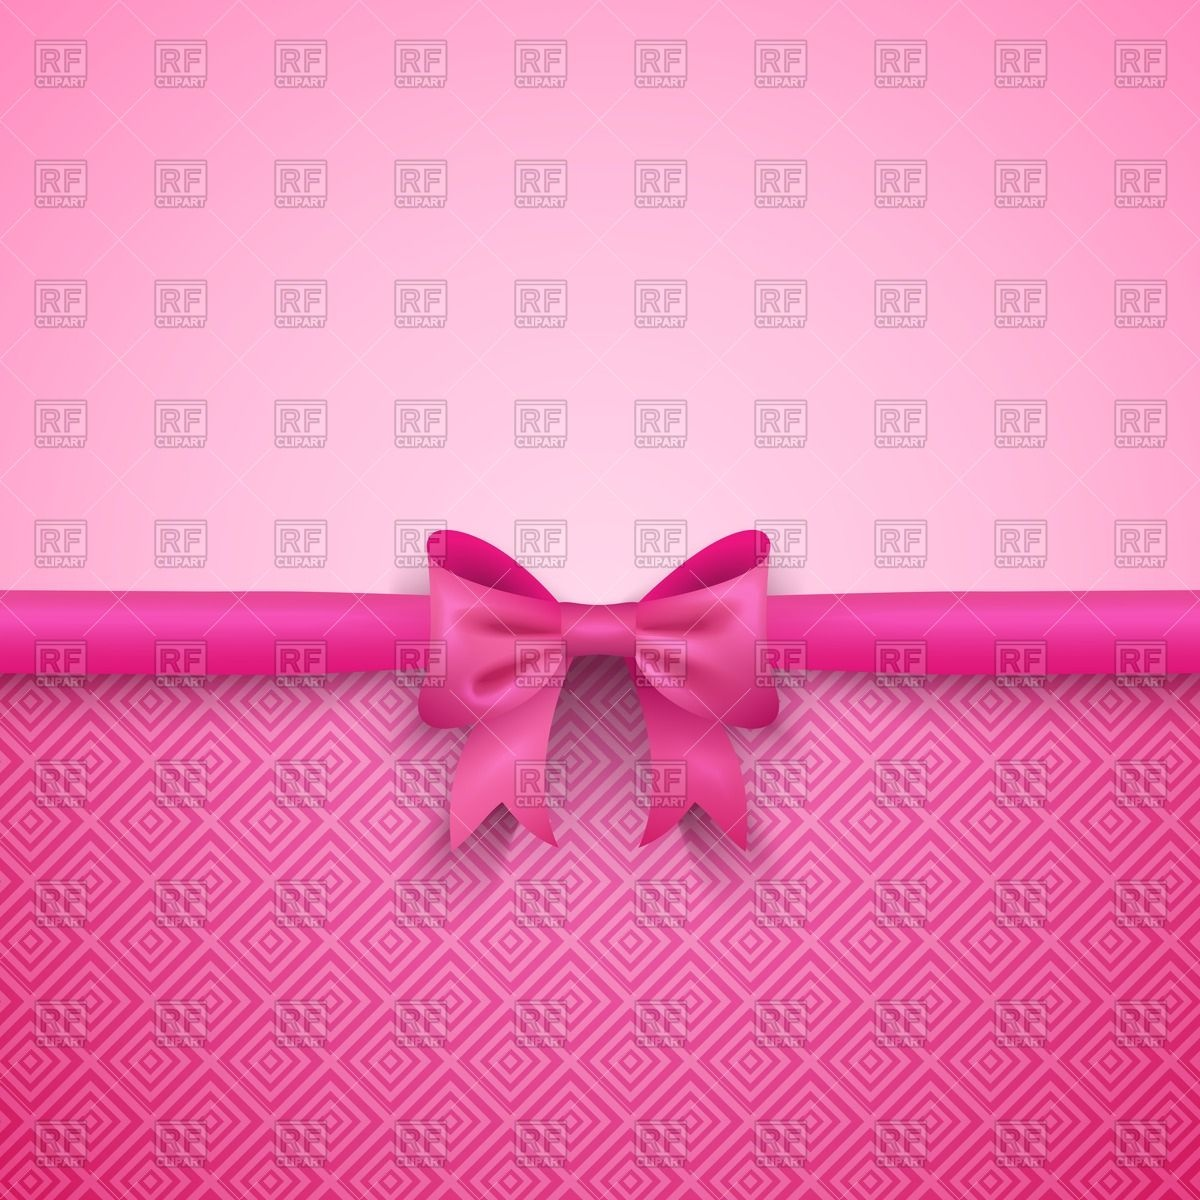 Pink background clipart #9